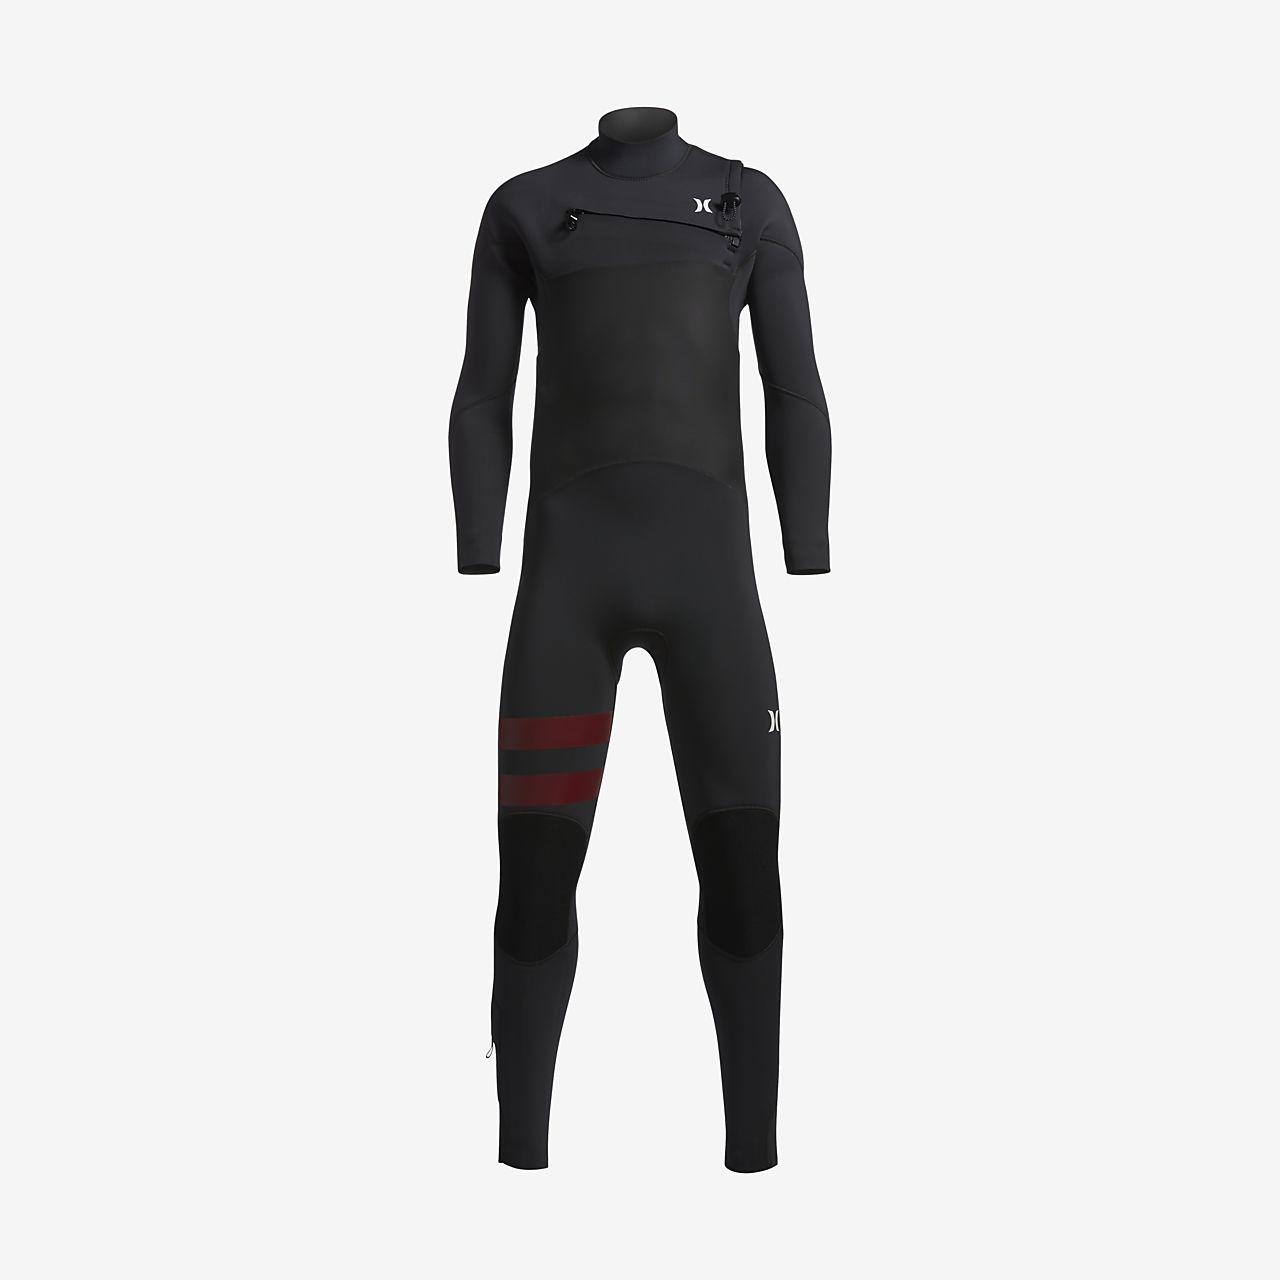 Hurley Advantage Plus 4/3mm Fullsuit Older Kids' (Boys') Wetsuit